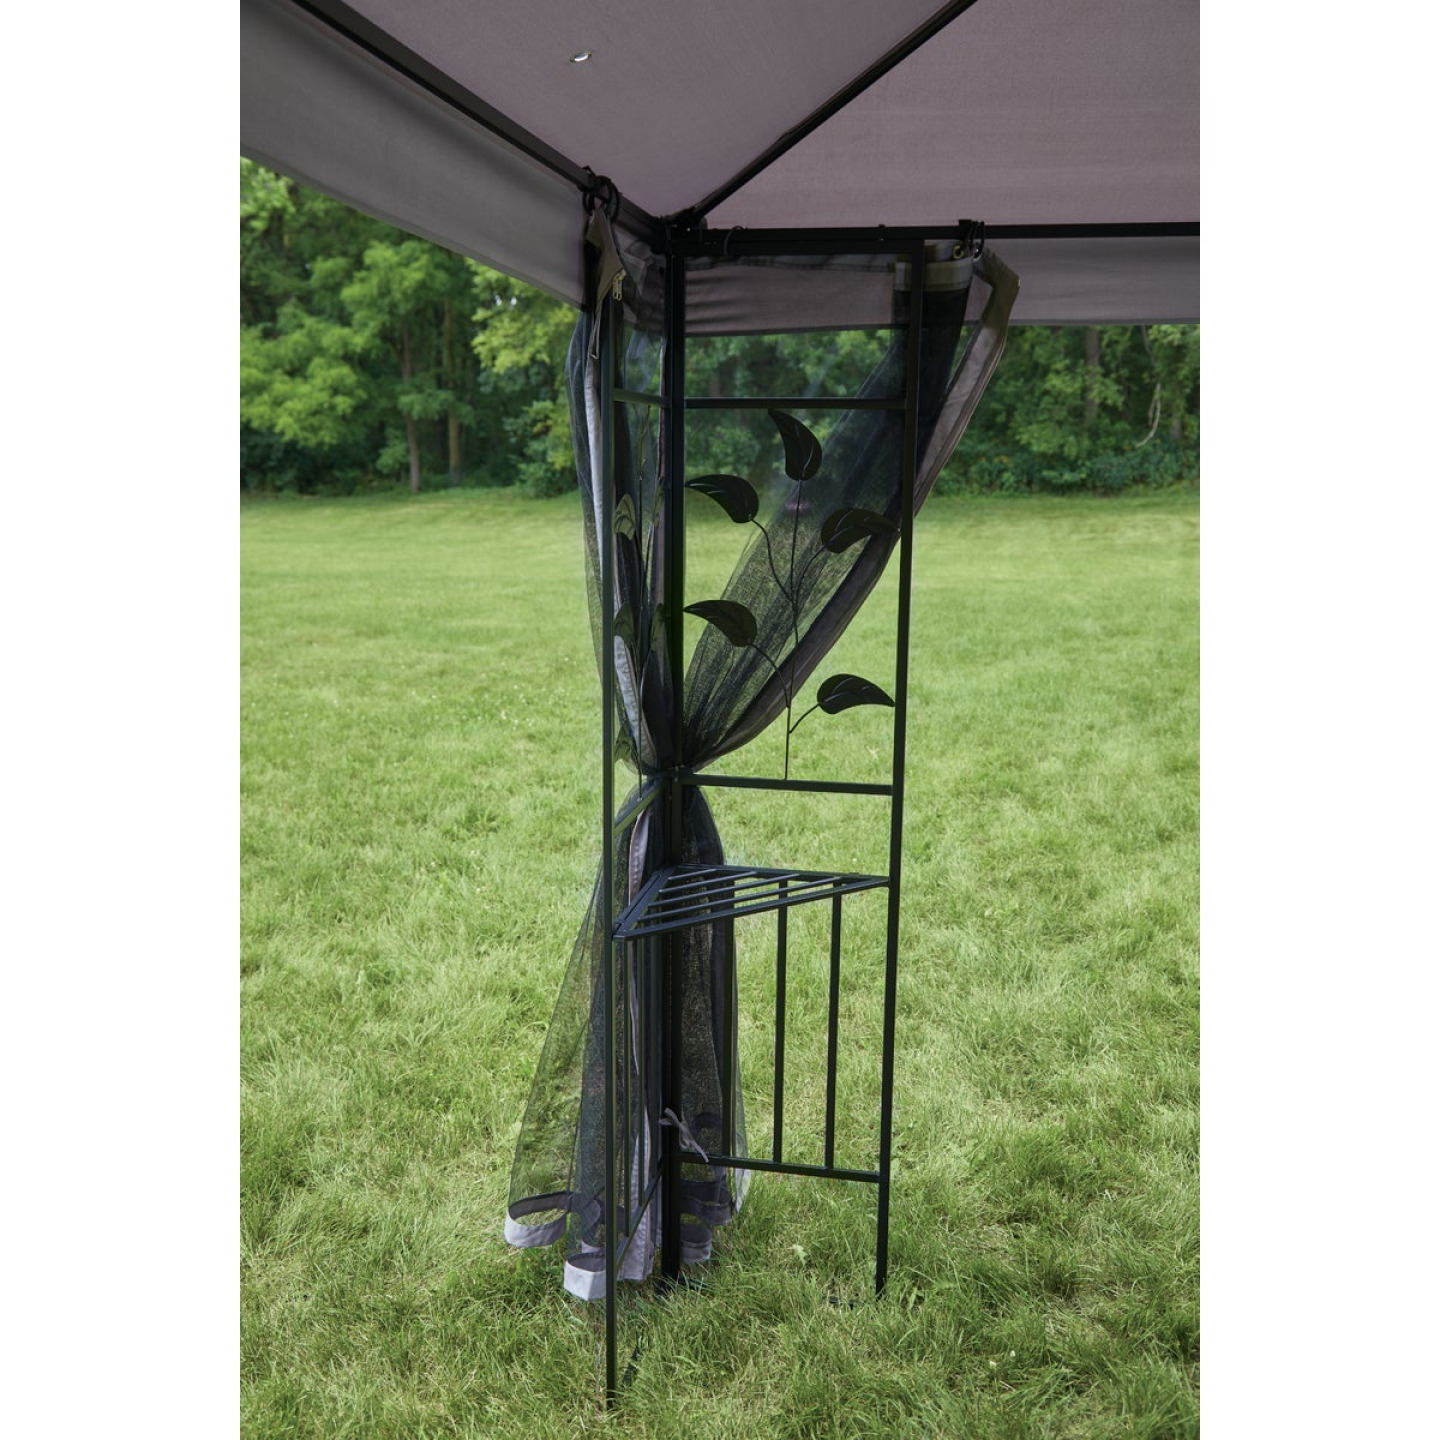 Outdoor Expressions 12 Ft. x 12 Ft. Gray & Black Steel Gazebo with Sides Image 6